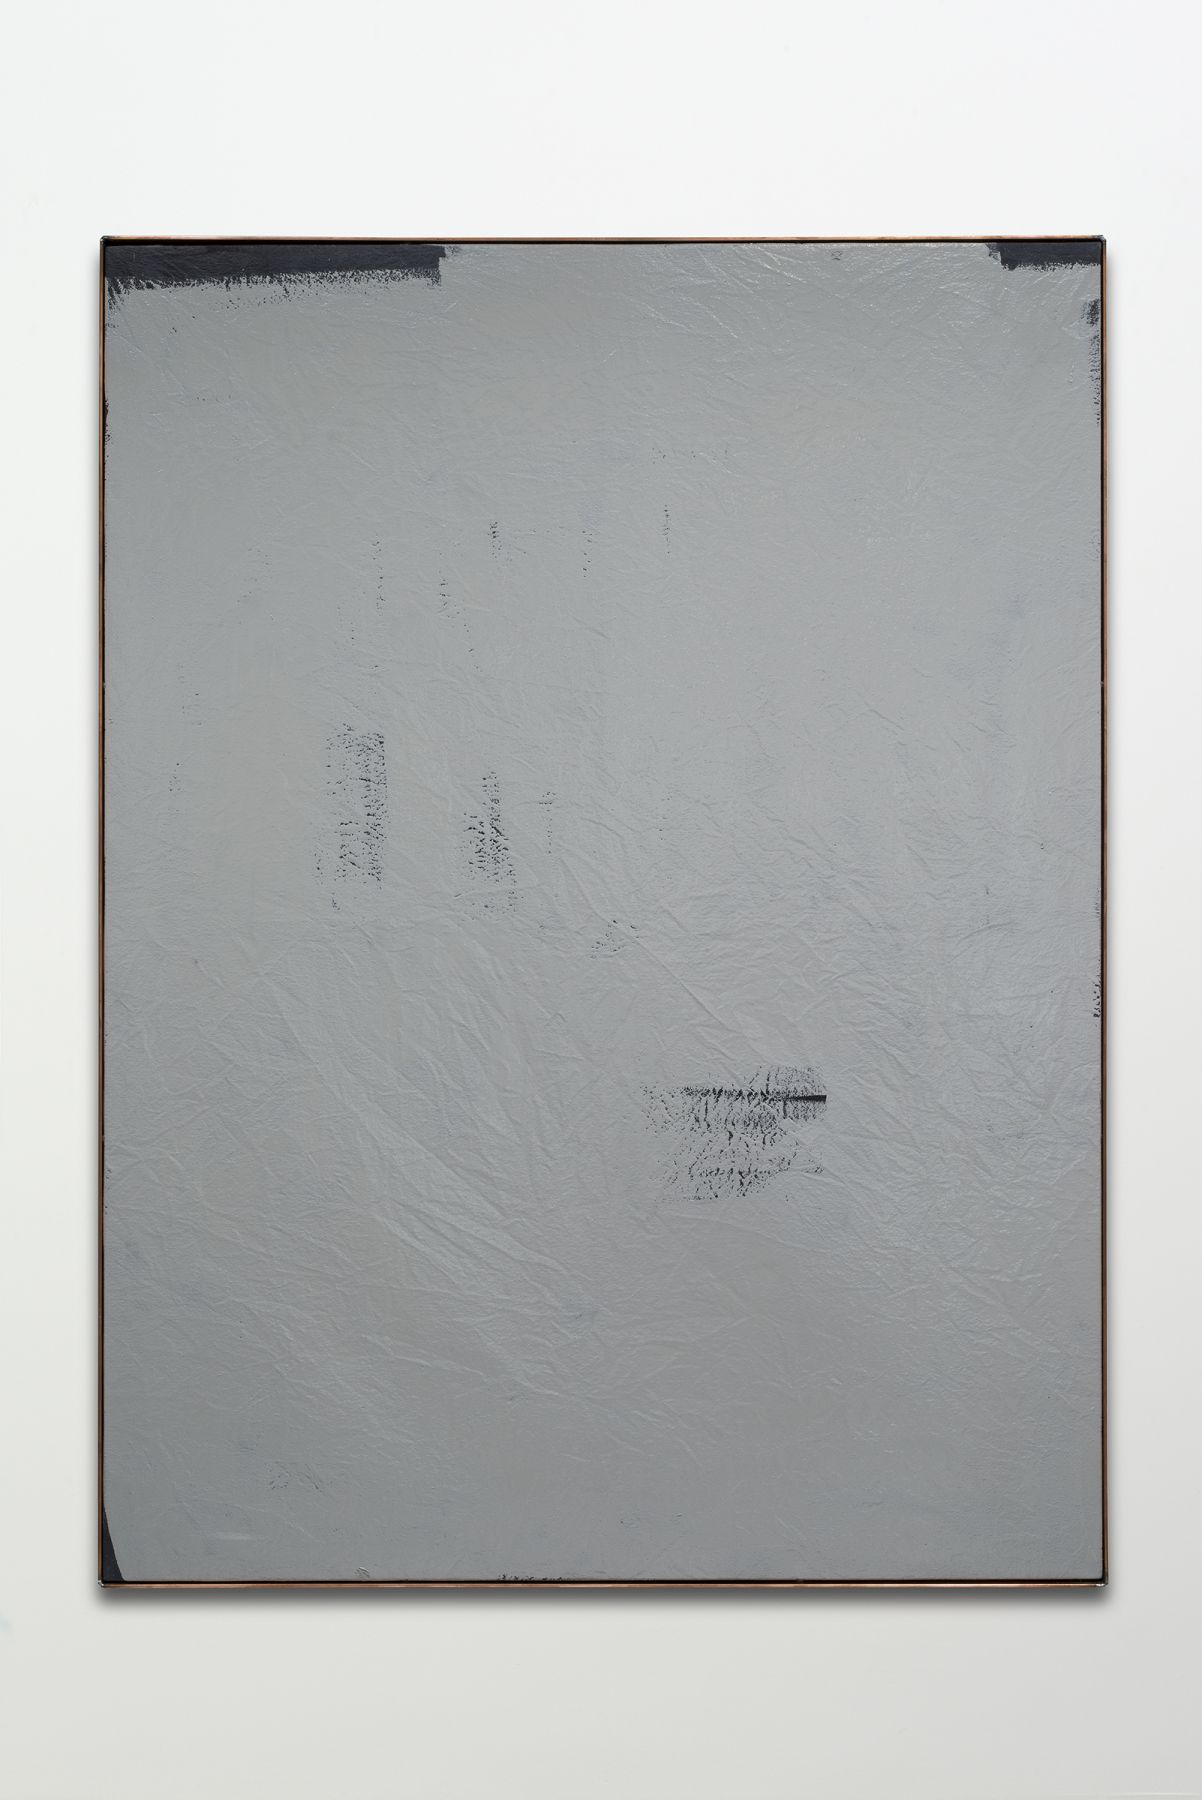 a grey abstract painting by dashiell manley